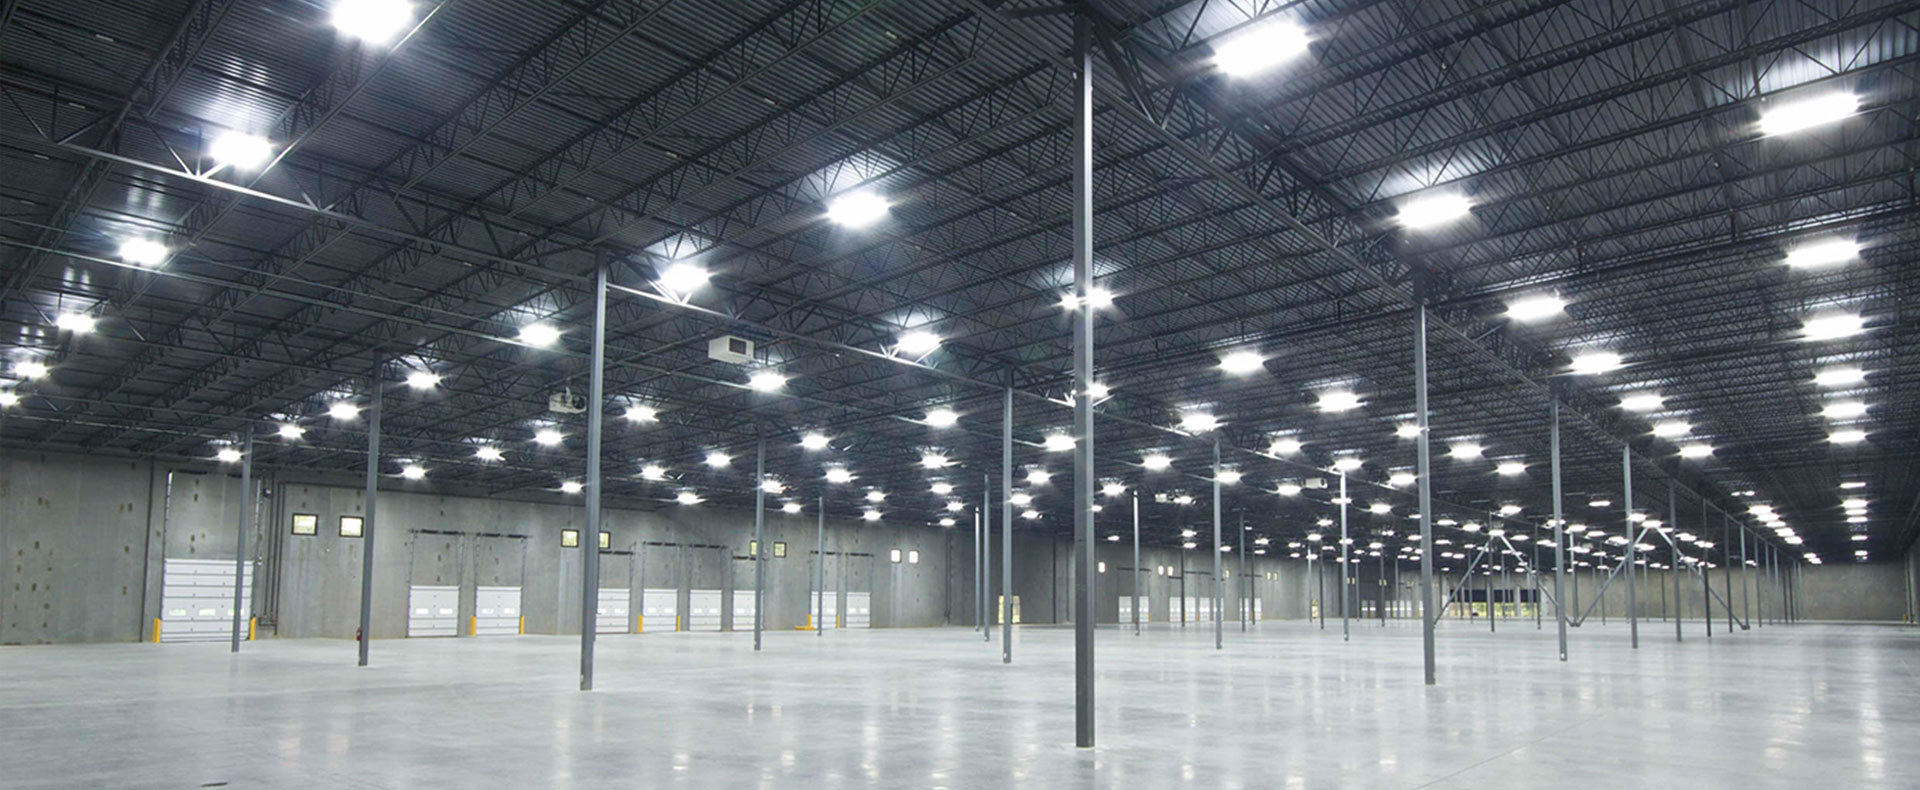 Spacious Interior steel warehouse with key light tracks.